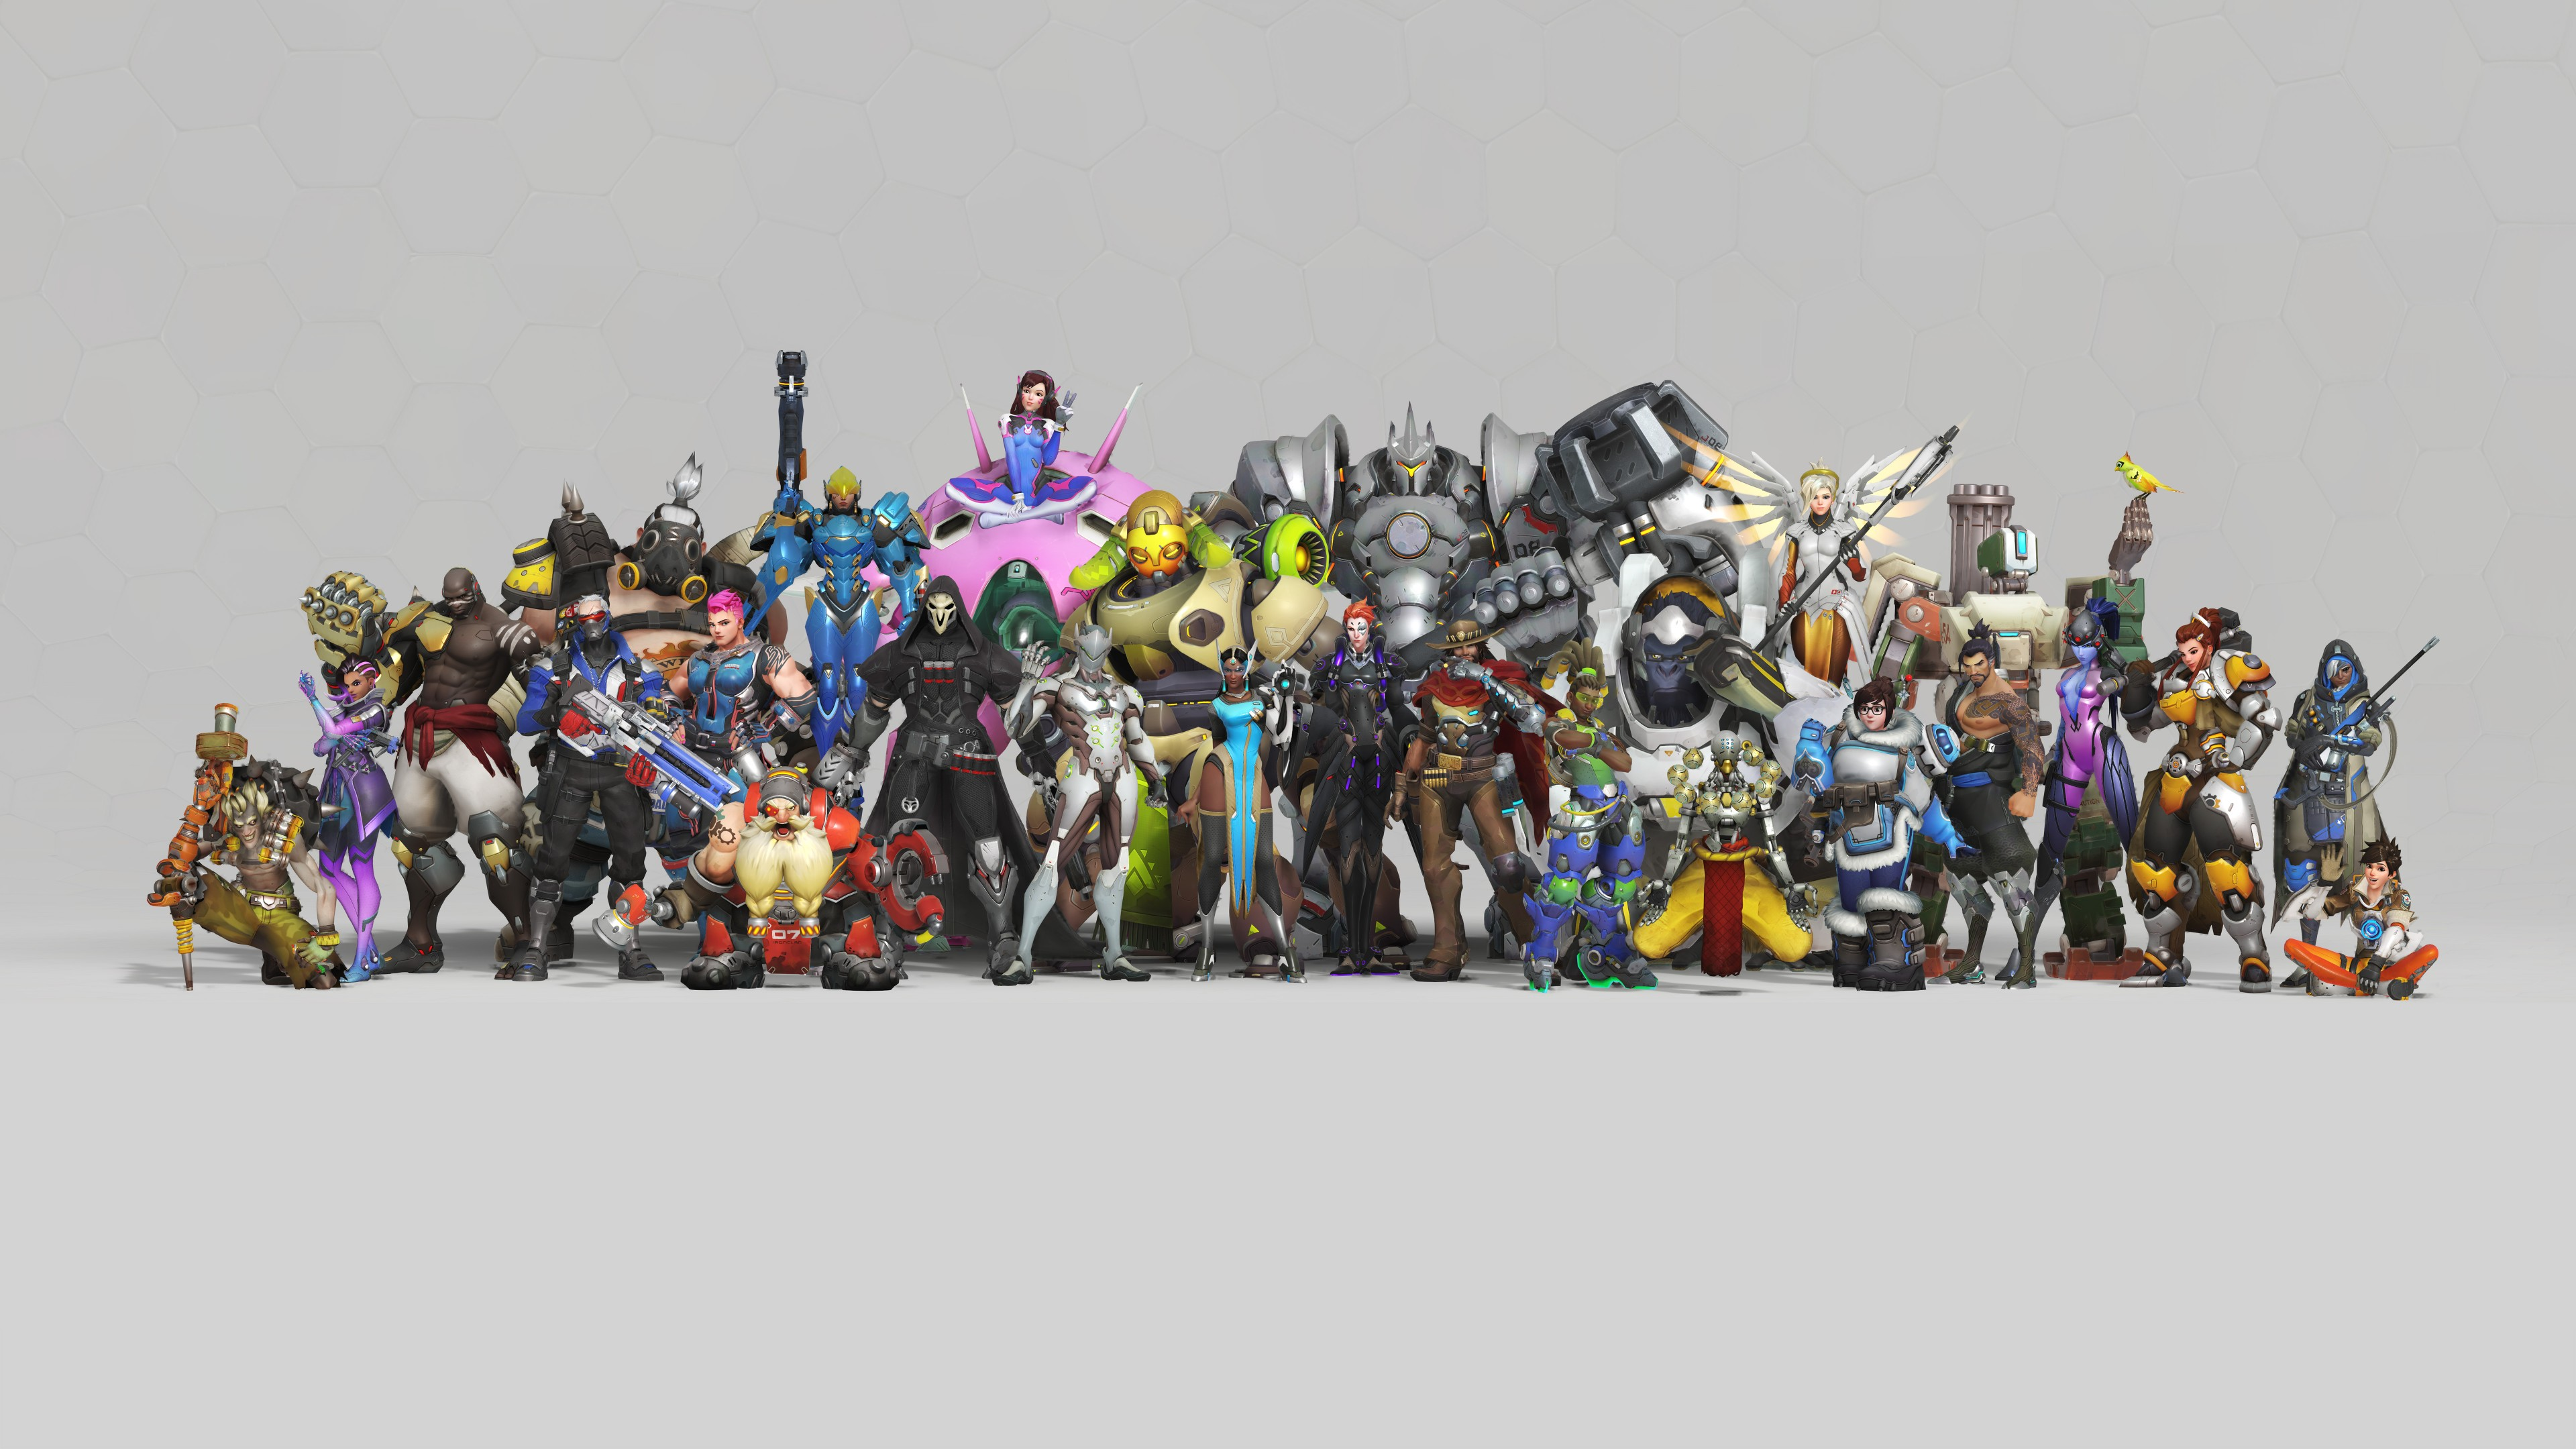 Wallpaper Overwatch Anniversary Heroes 8k Games 18678